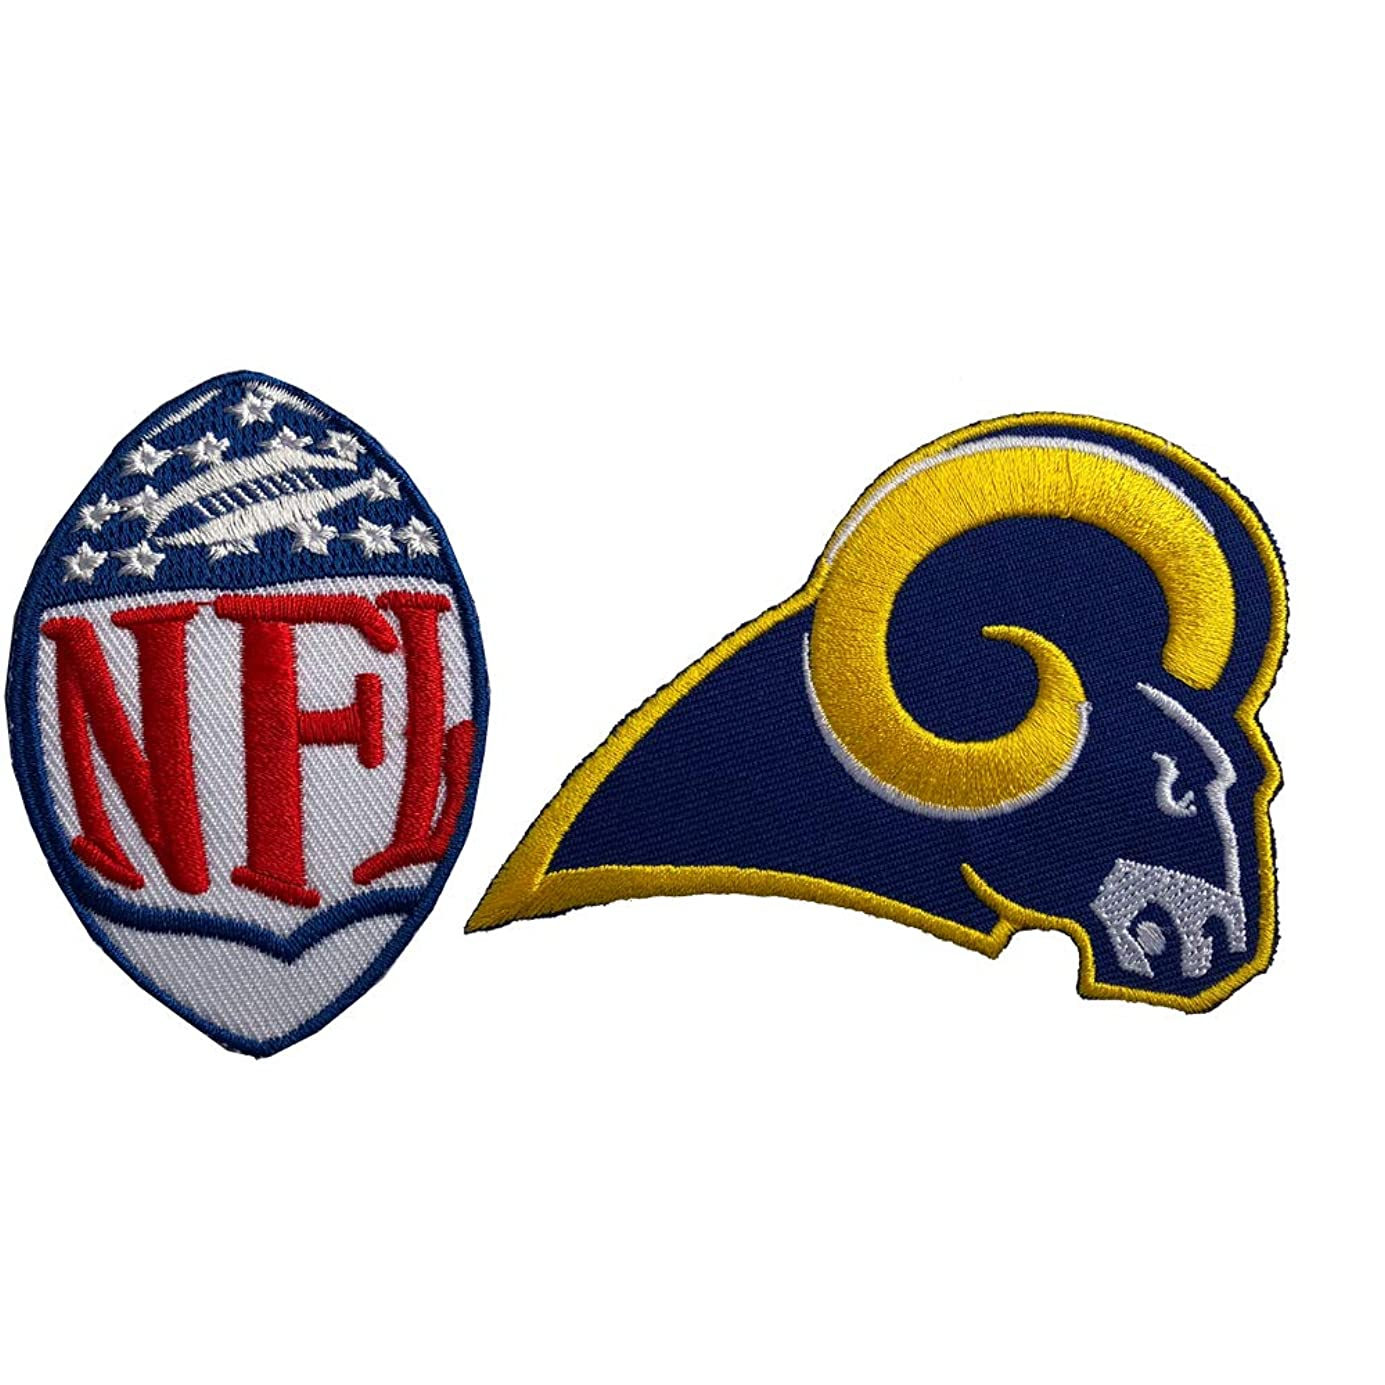 Hipatch Los Angeles Rams Embroidered Patch Iron on Logo Vest Jacket Cap Hoodie Backpack Patch Iron On/sew on Patch Set of 2Pcs vczpuv2302